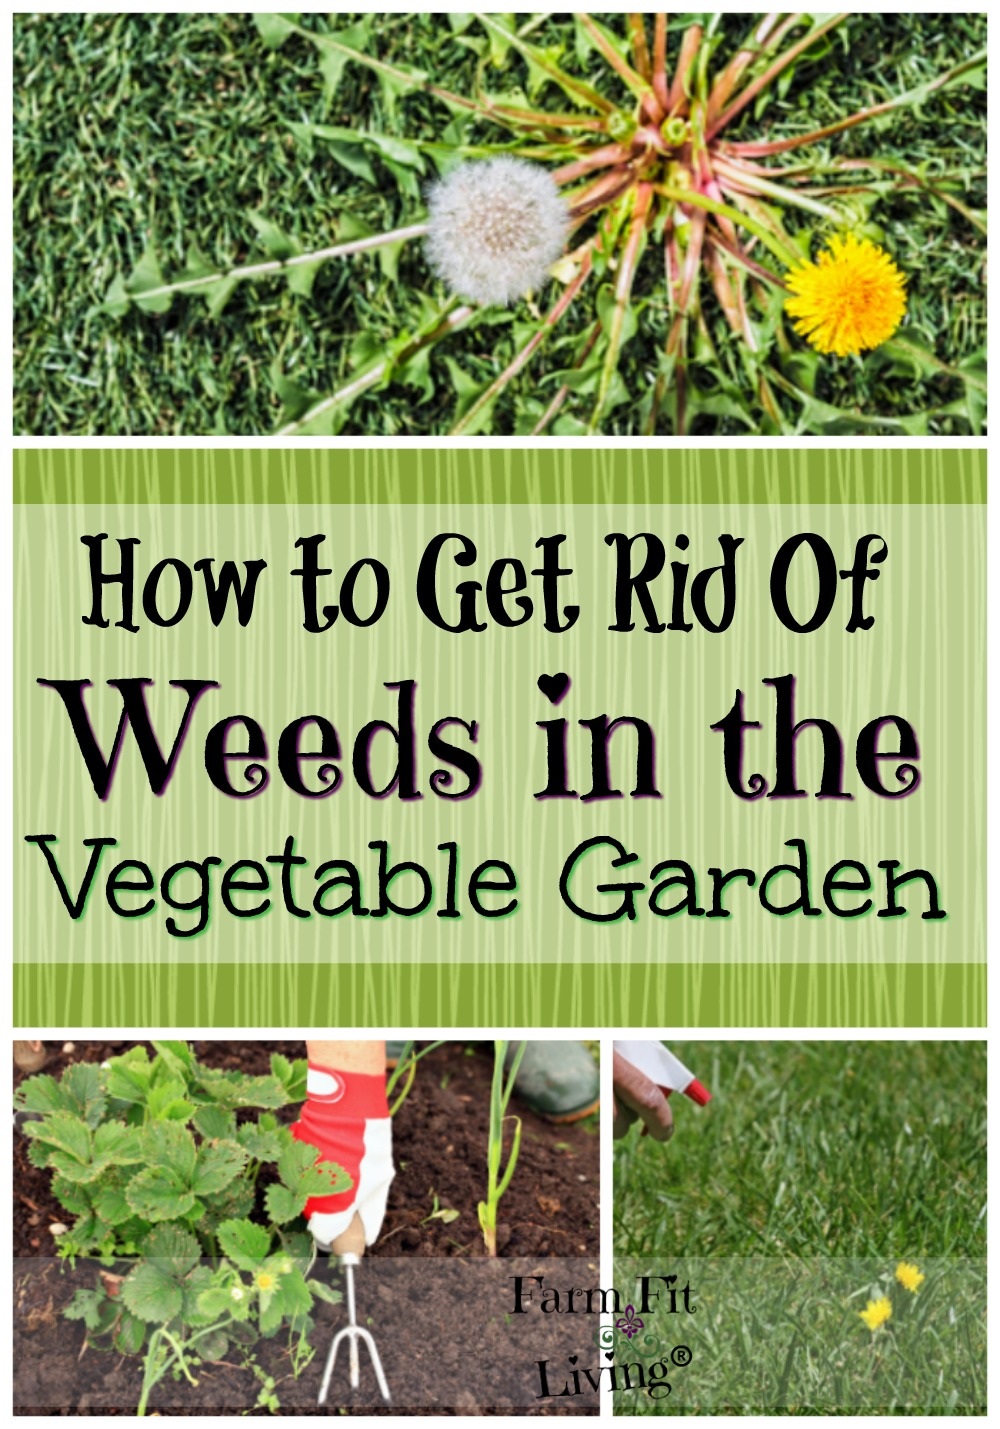 How to get rid of weeds in vegetable gardens Vegetable garden weed control